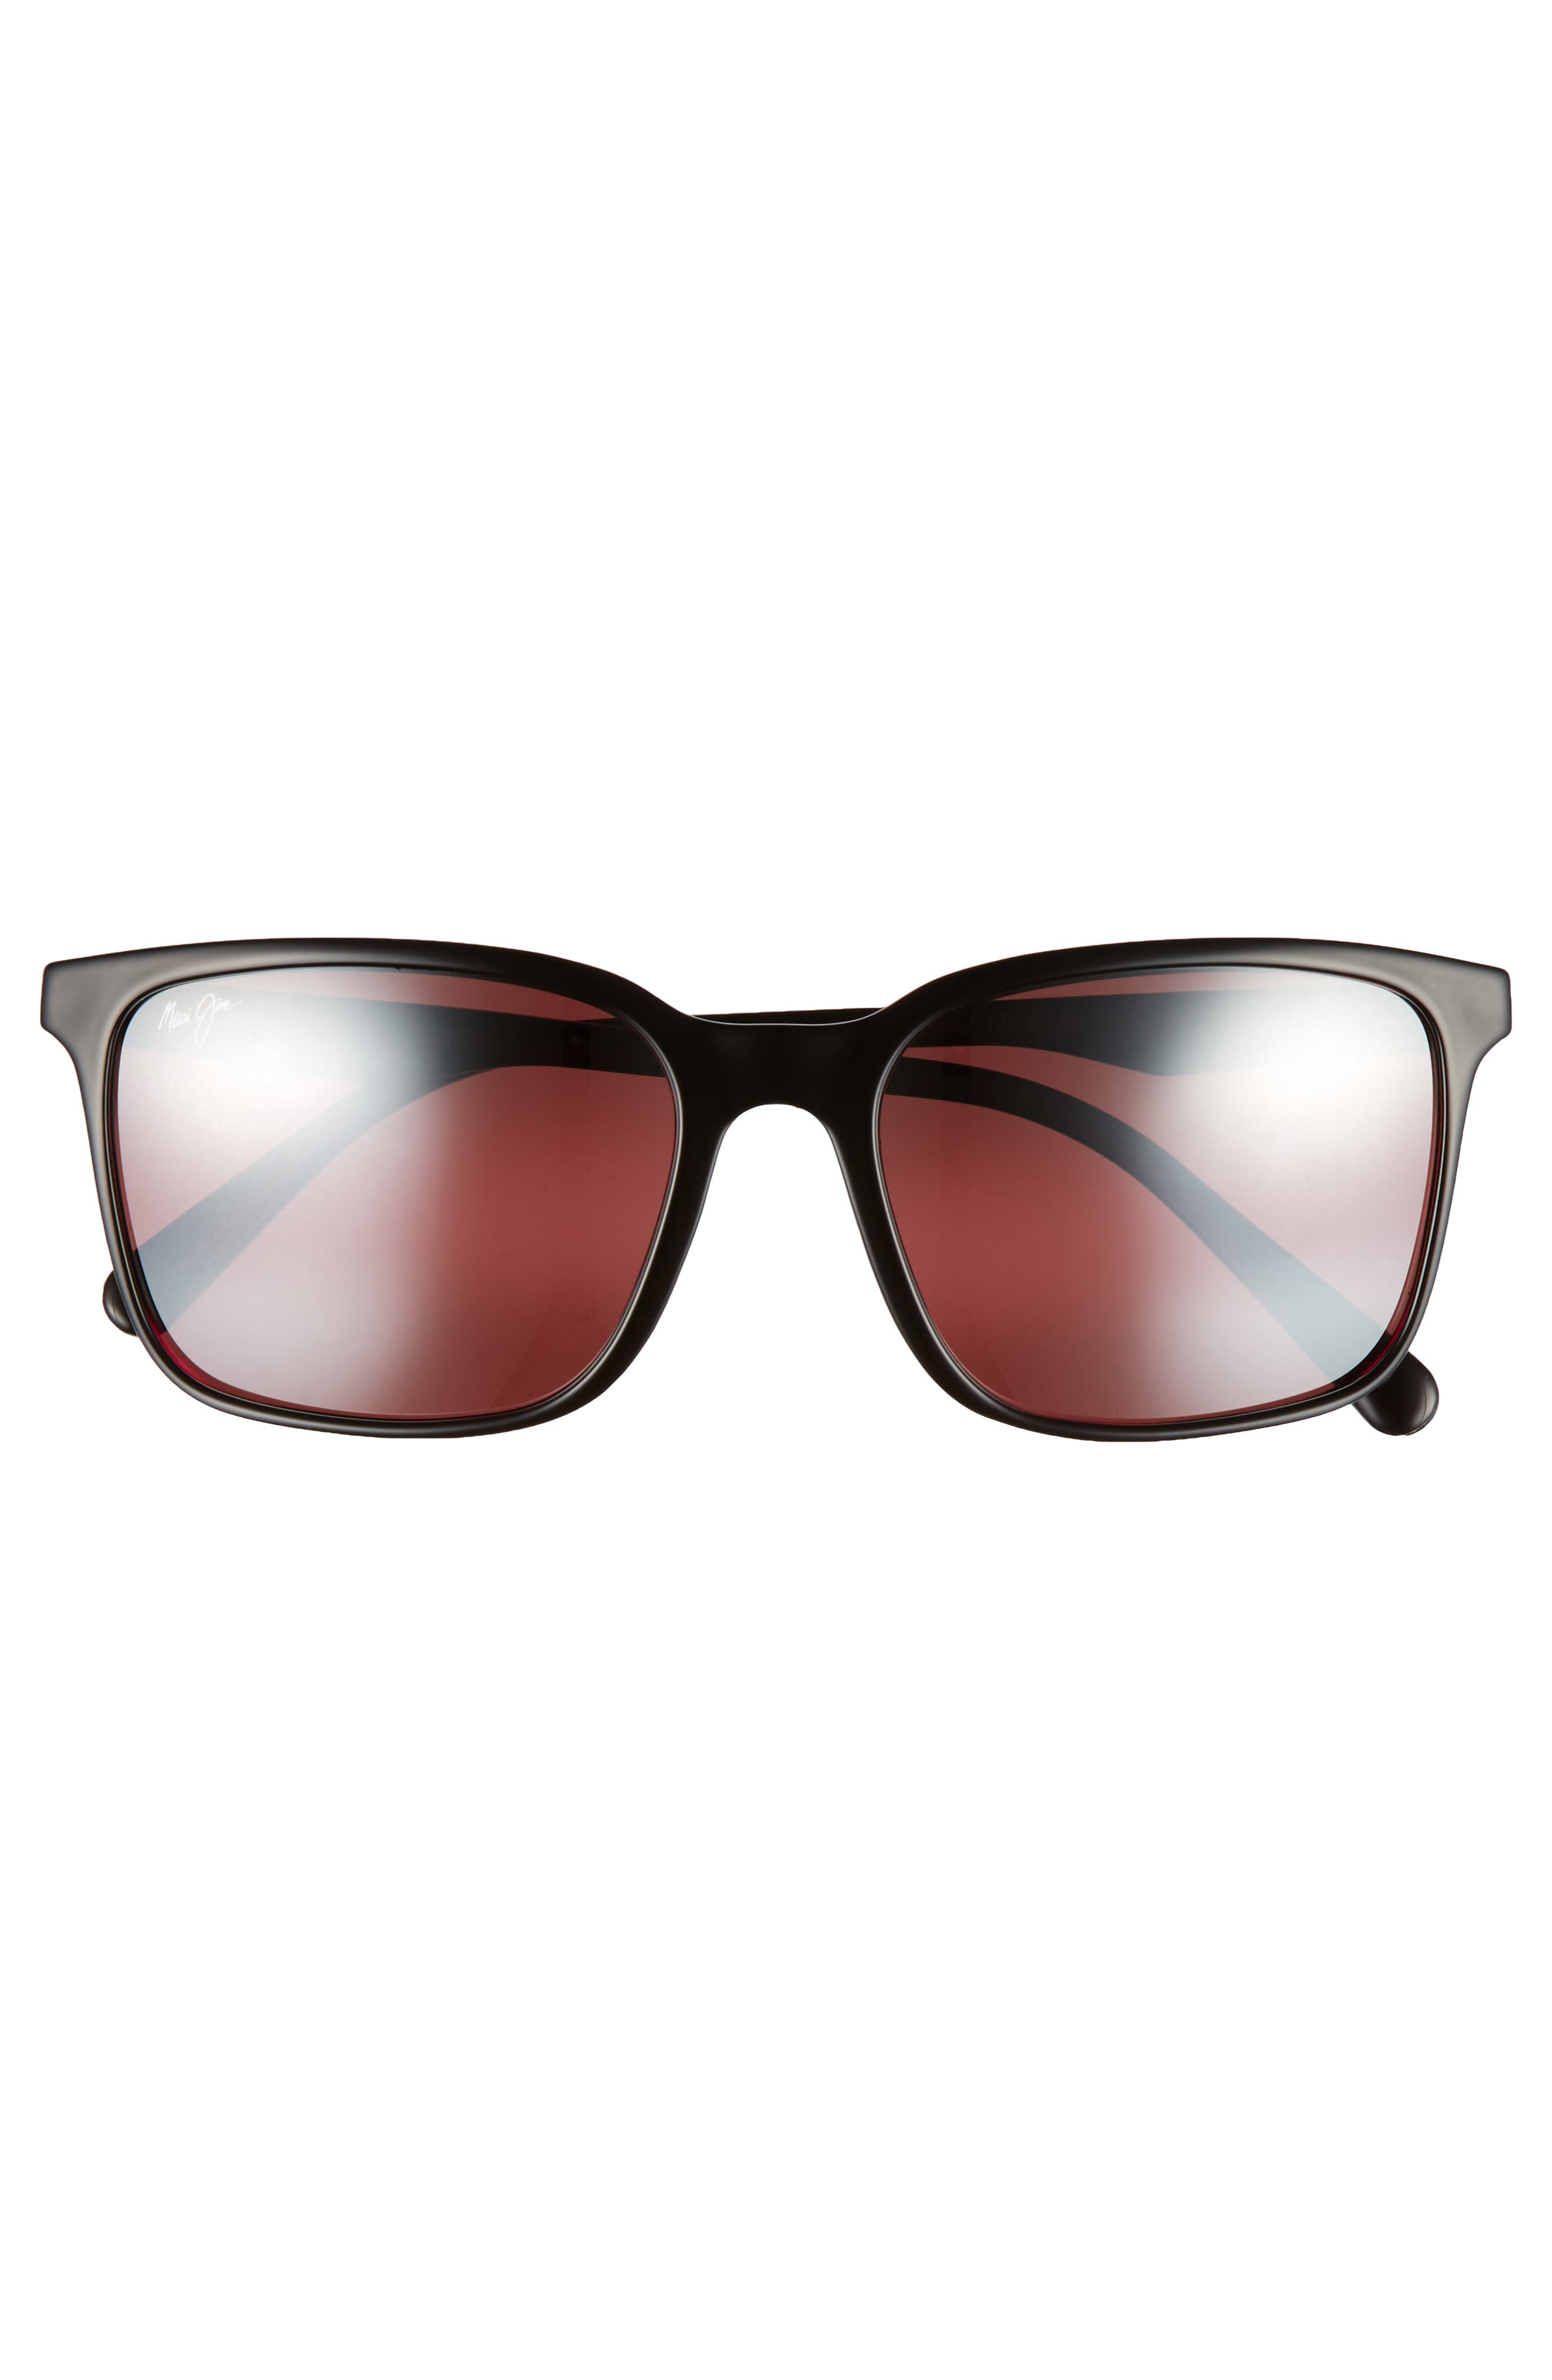 Wild Coast 56mm Polarized Sunglasses,                             Alternate thumbnail 2, color,                             Black With Red/ Maui Rose